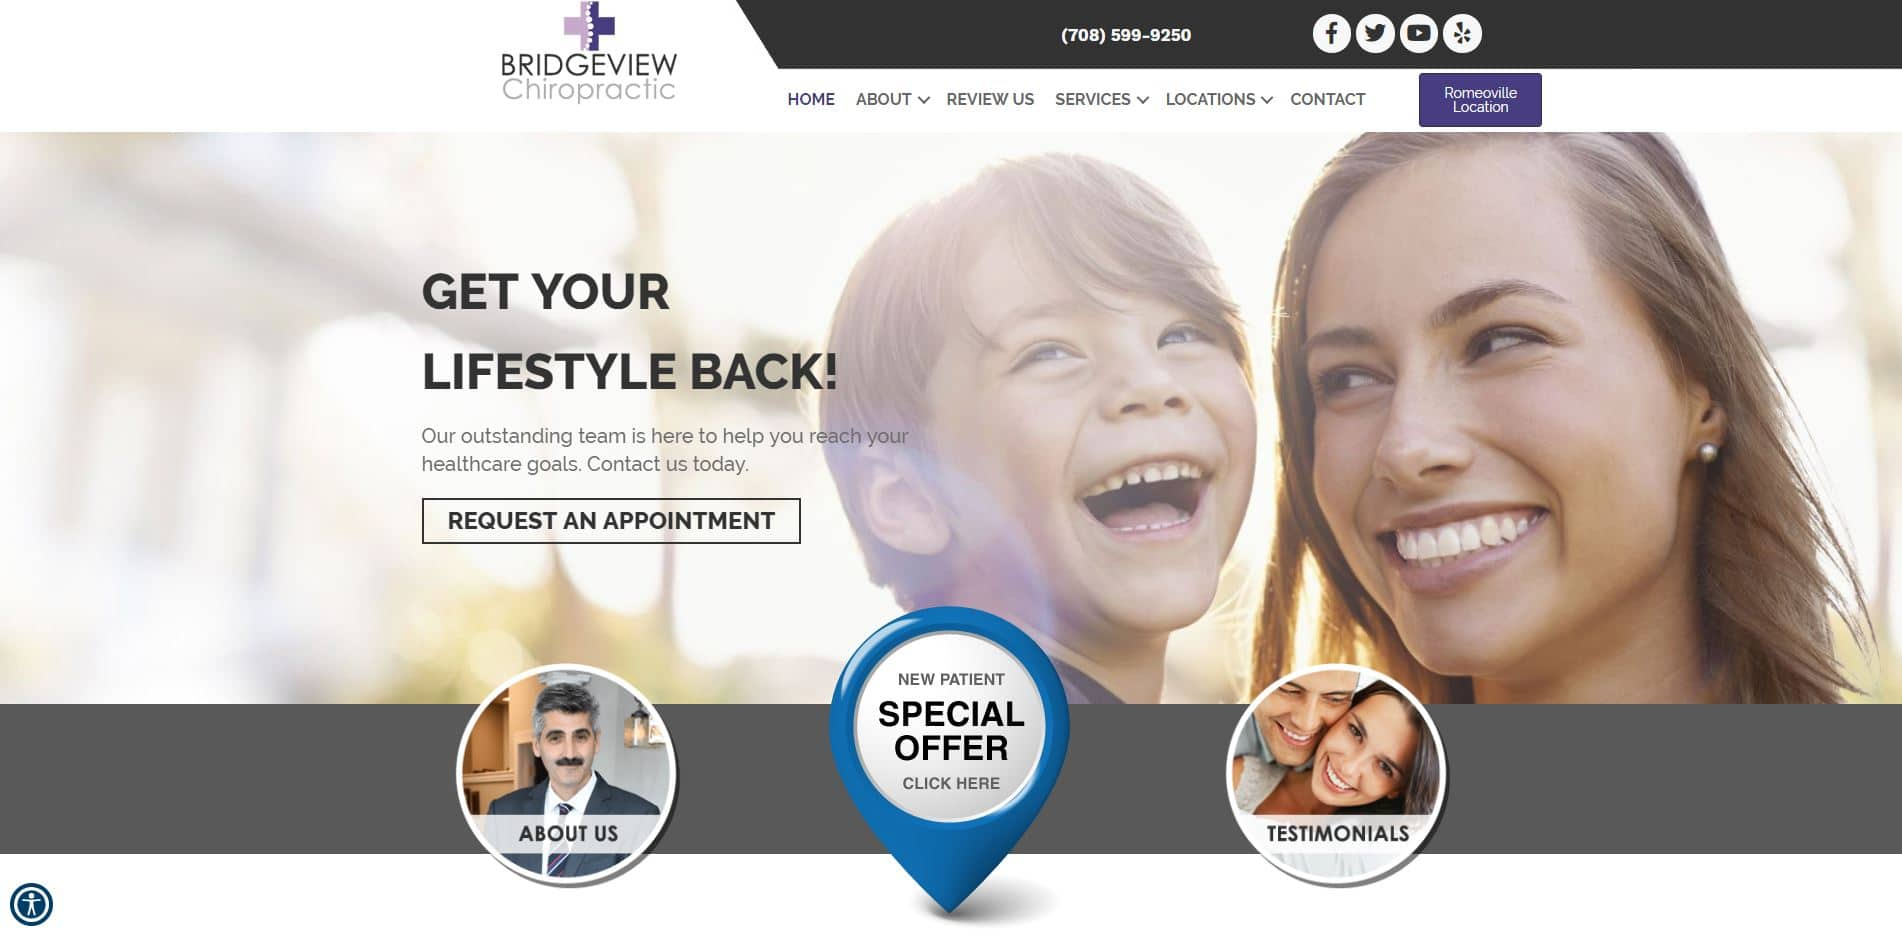 Chiropractor in Bridgeview